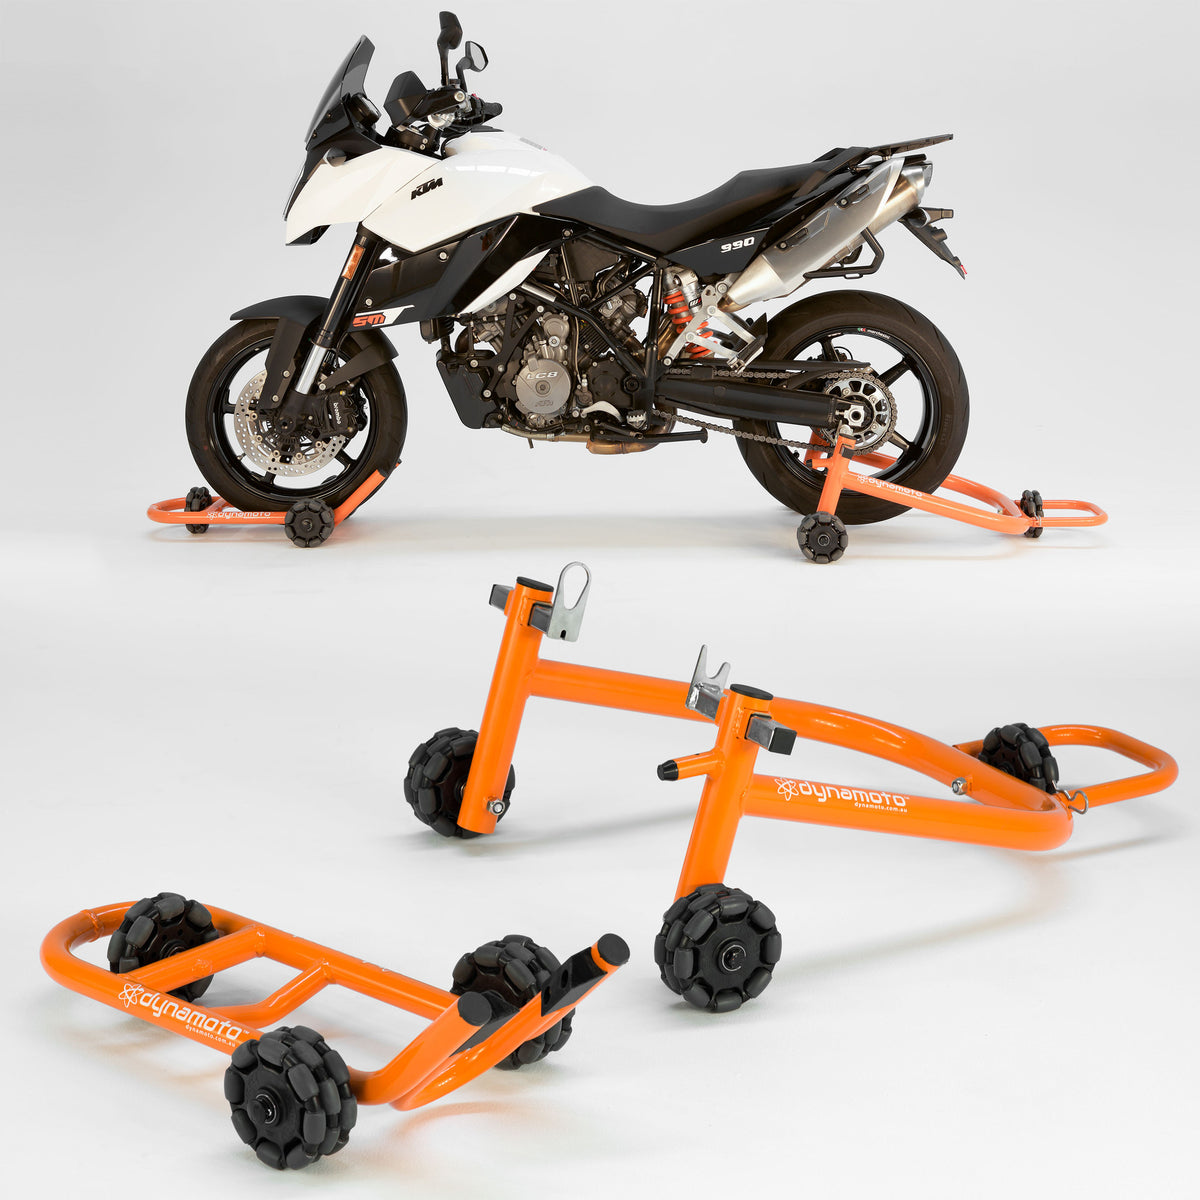 STAND SET:<br> FRONT STAND + REAR STAND<br> FOR DOUBLE-SIDED SWINGARM BIKES